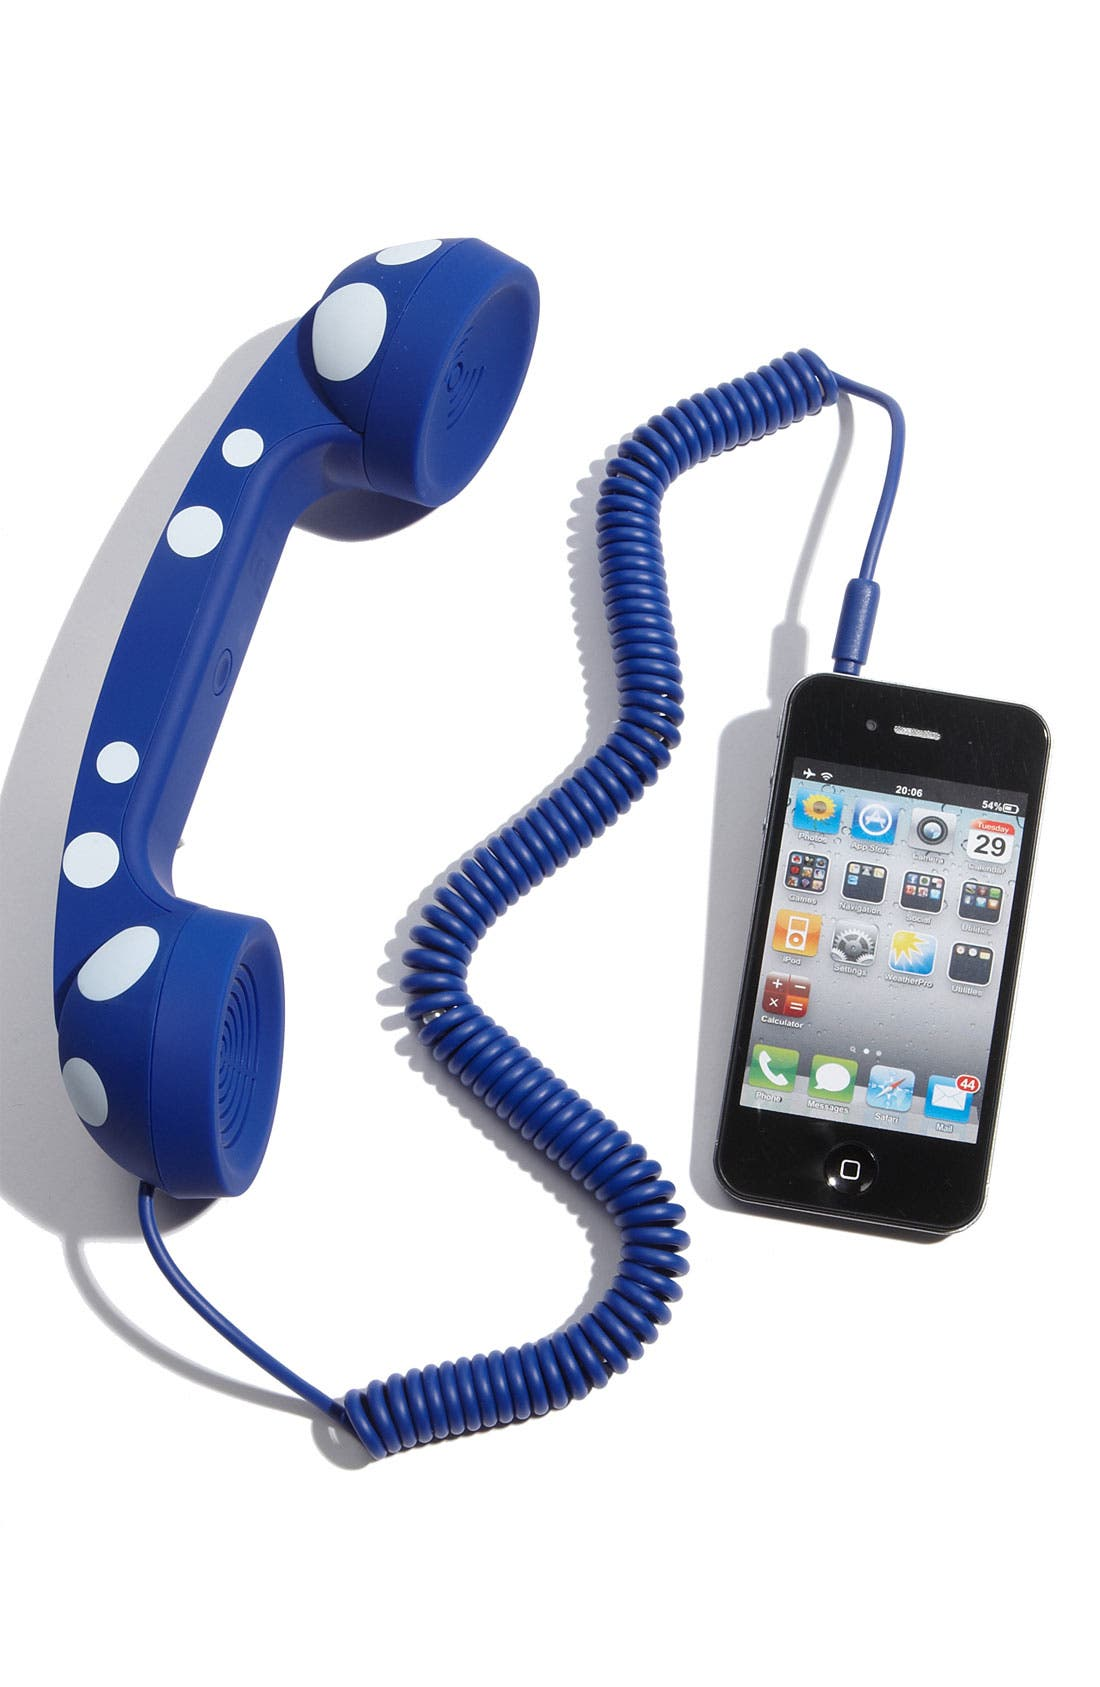 Alternate Image 1 Selected - Native Union 'Polka Dot Pop Phone' Handset (Nordstrom Exclusive)